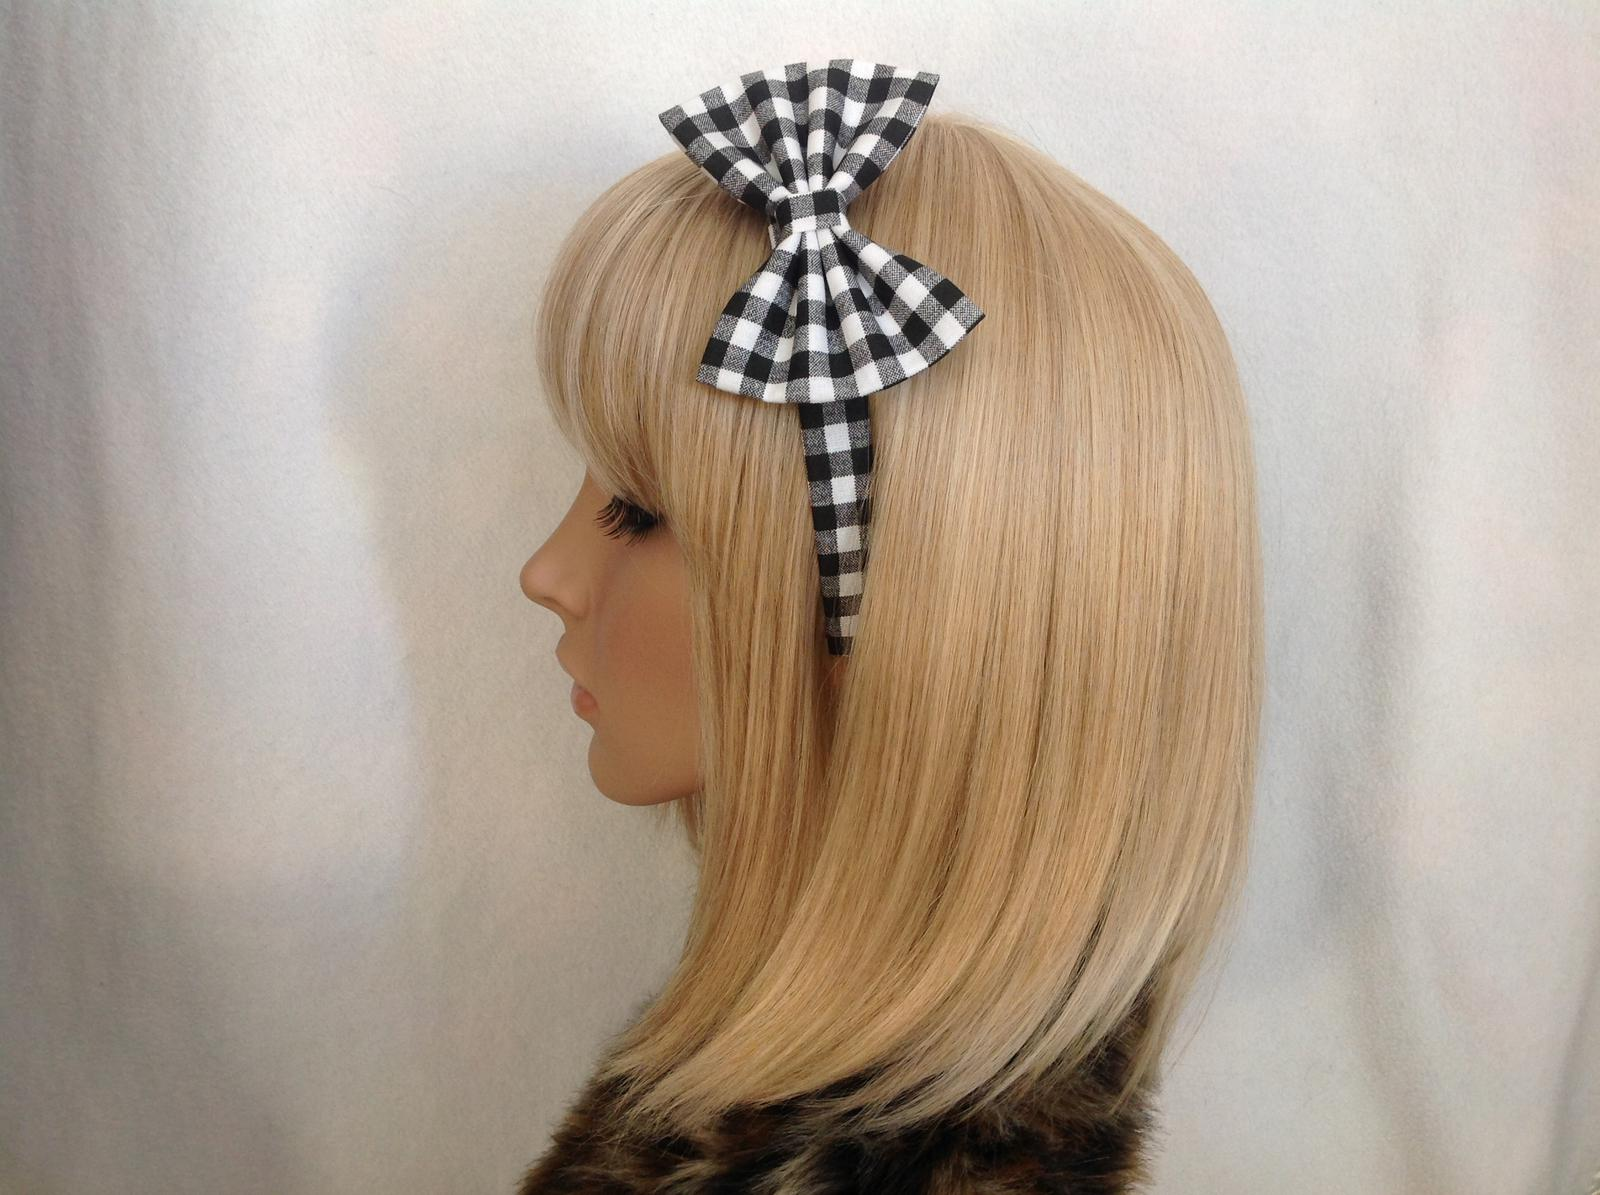 Black & white gingham headband